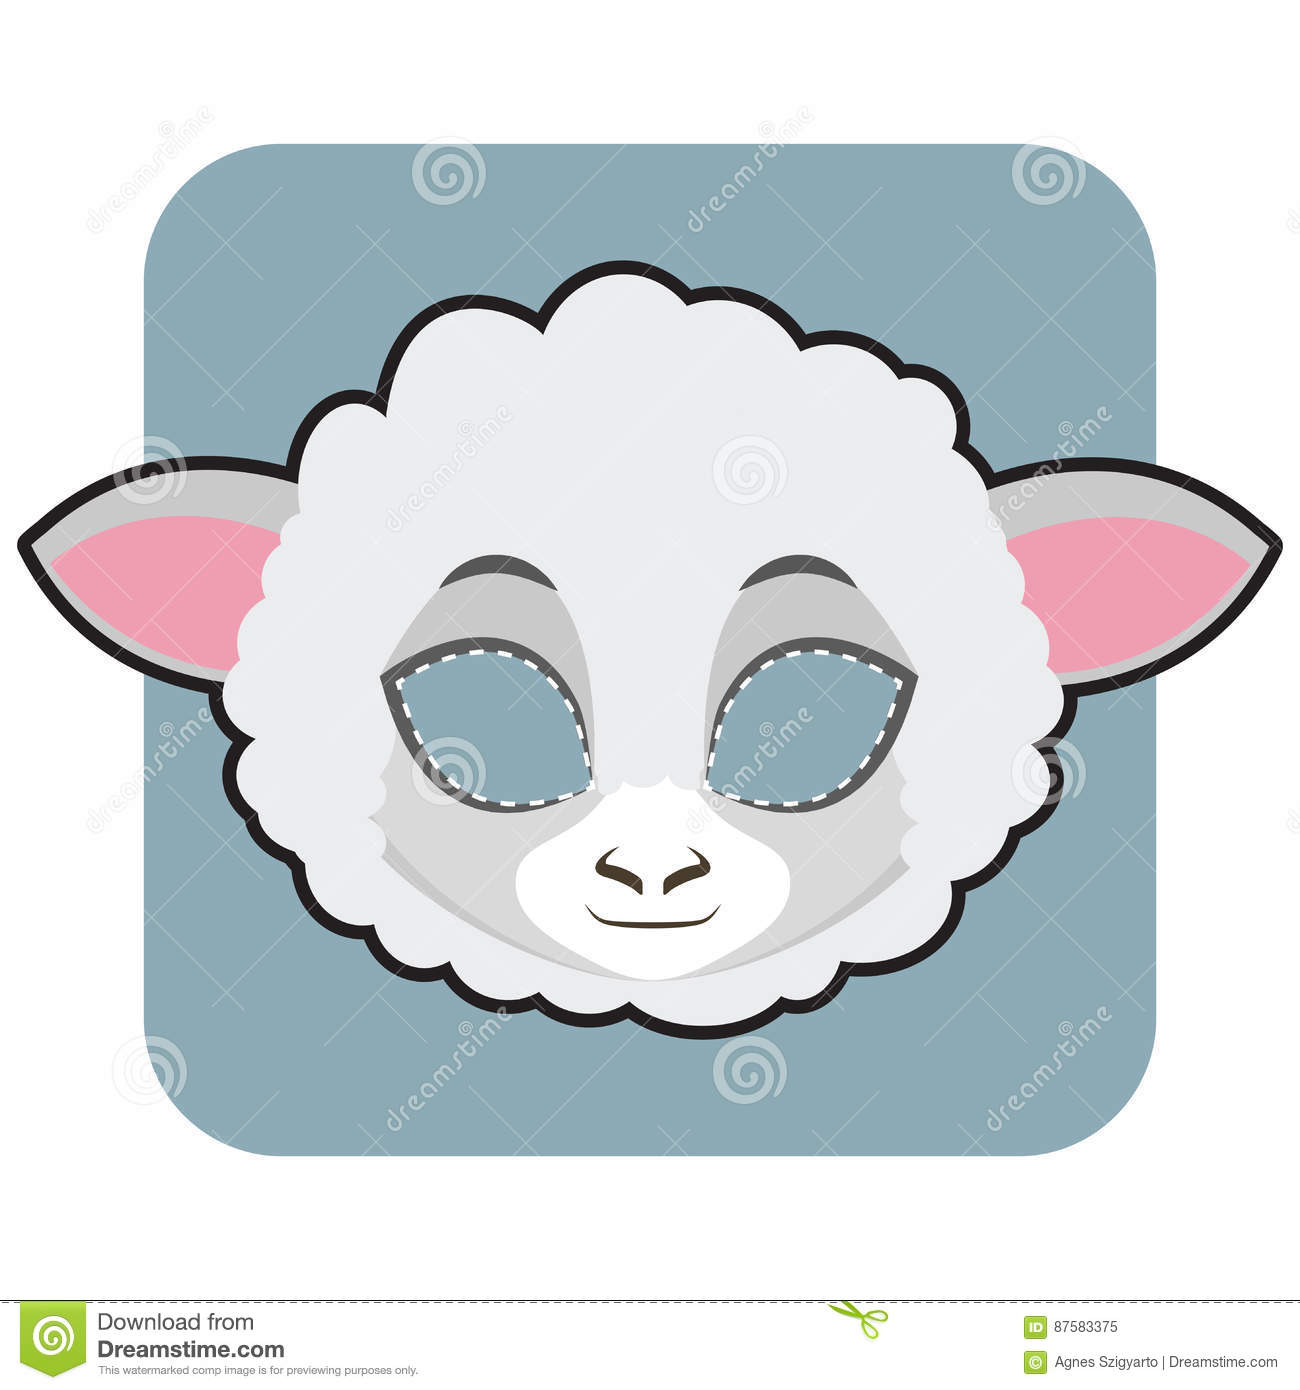 Sheep Mask For Festivities Stock Vector - Image: 87583375